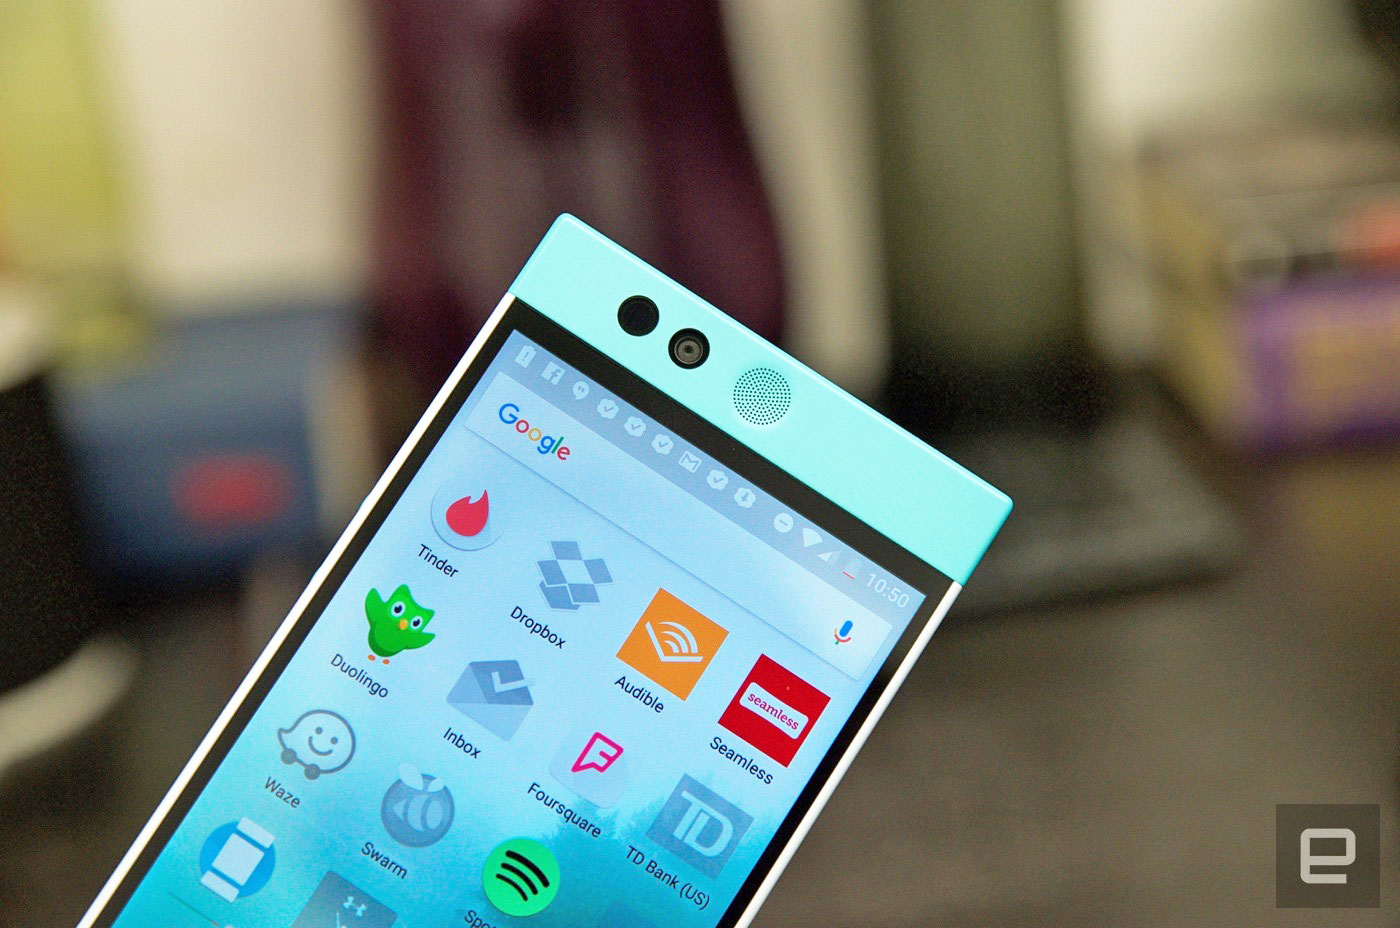 Camera Cloud On Android Phone nextbit robin cloud phone is going on sale at amazon kickstarter fundraising campaign in 2015 you may want to check out its listing the first android tha